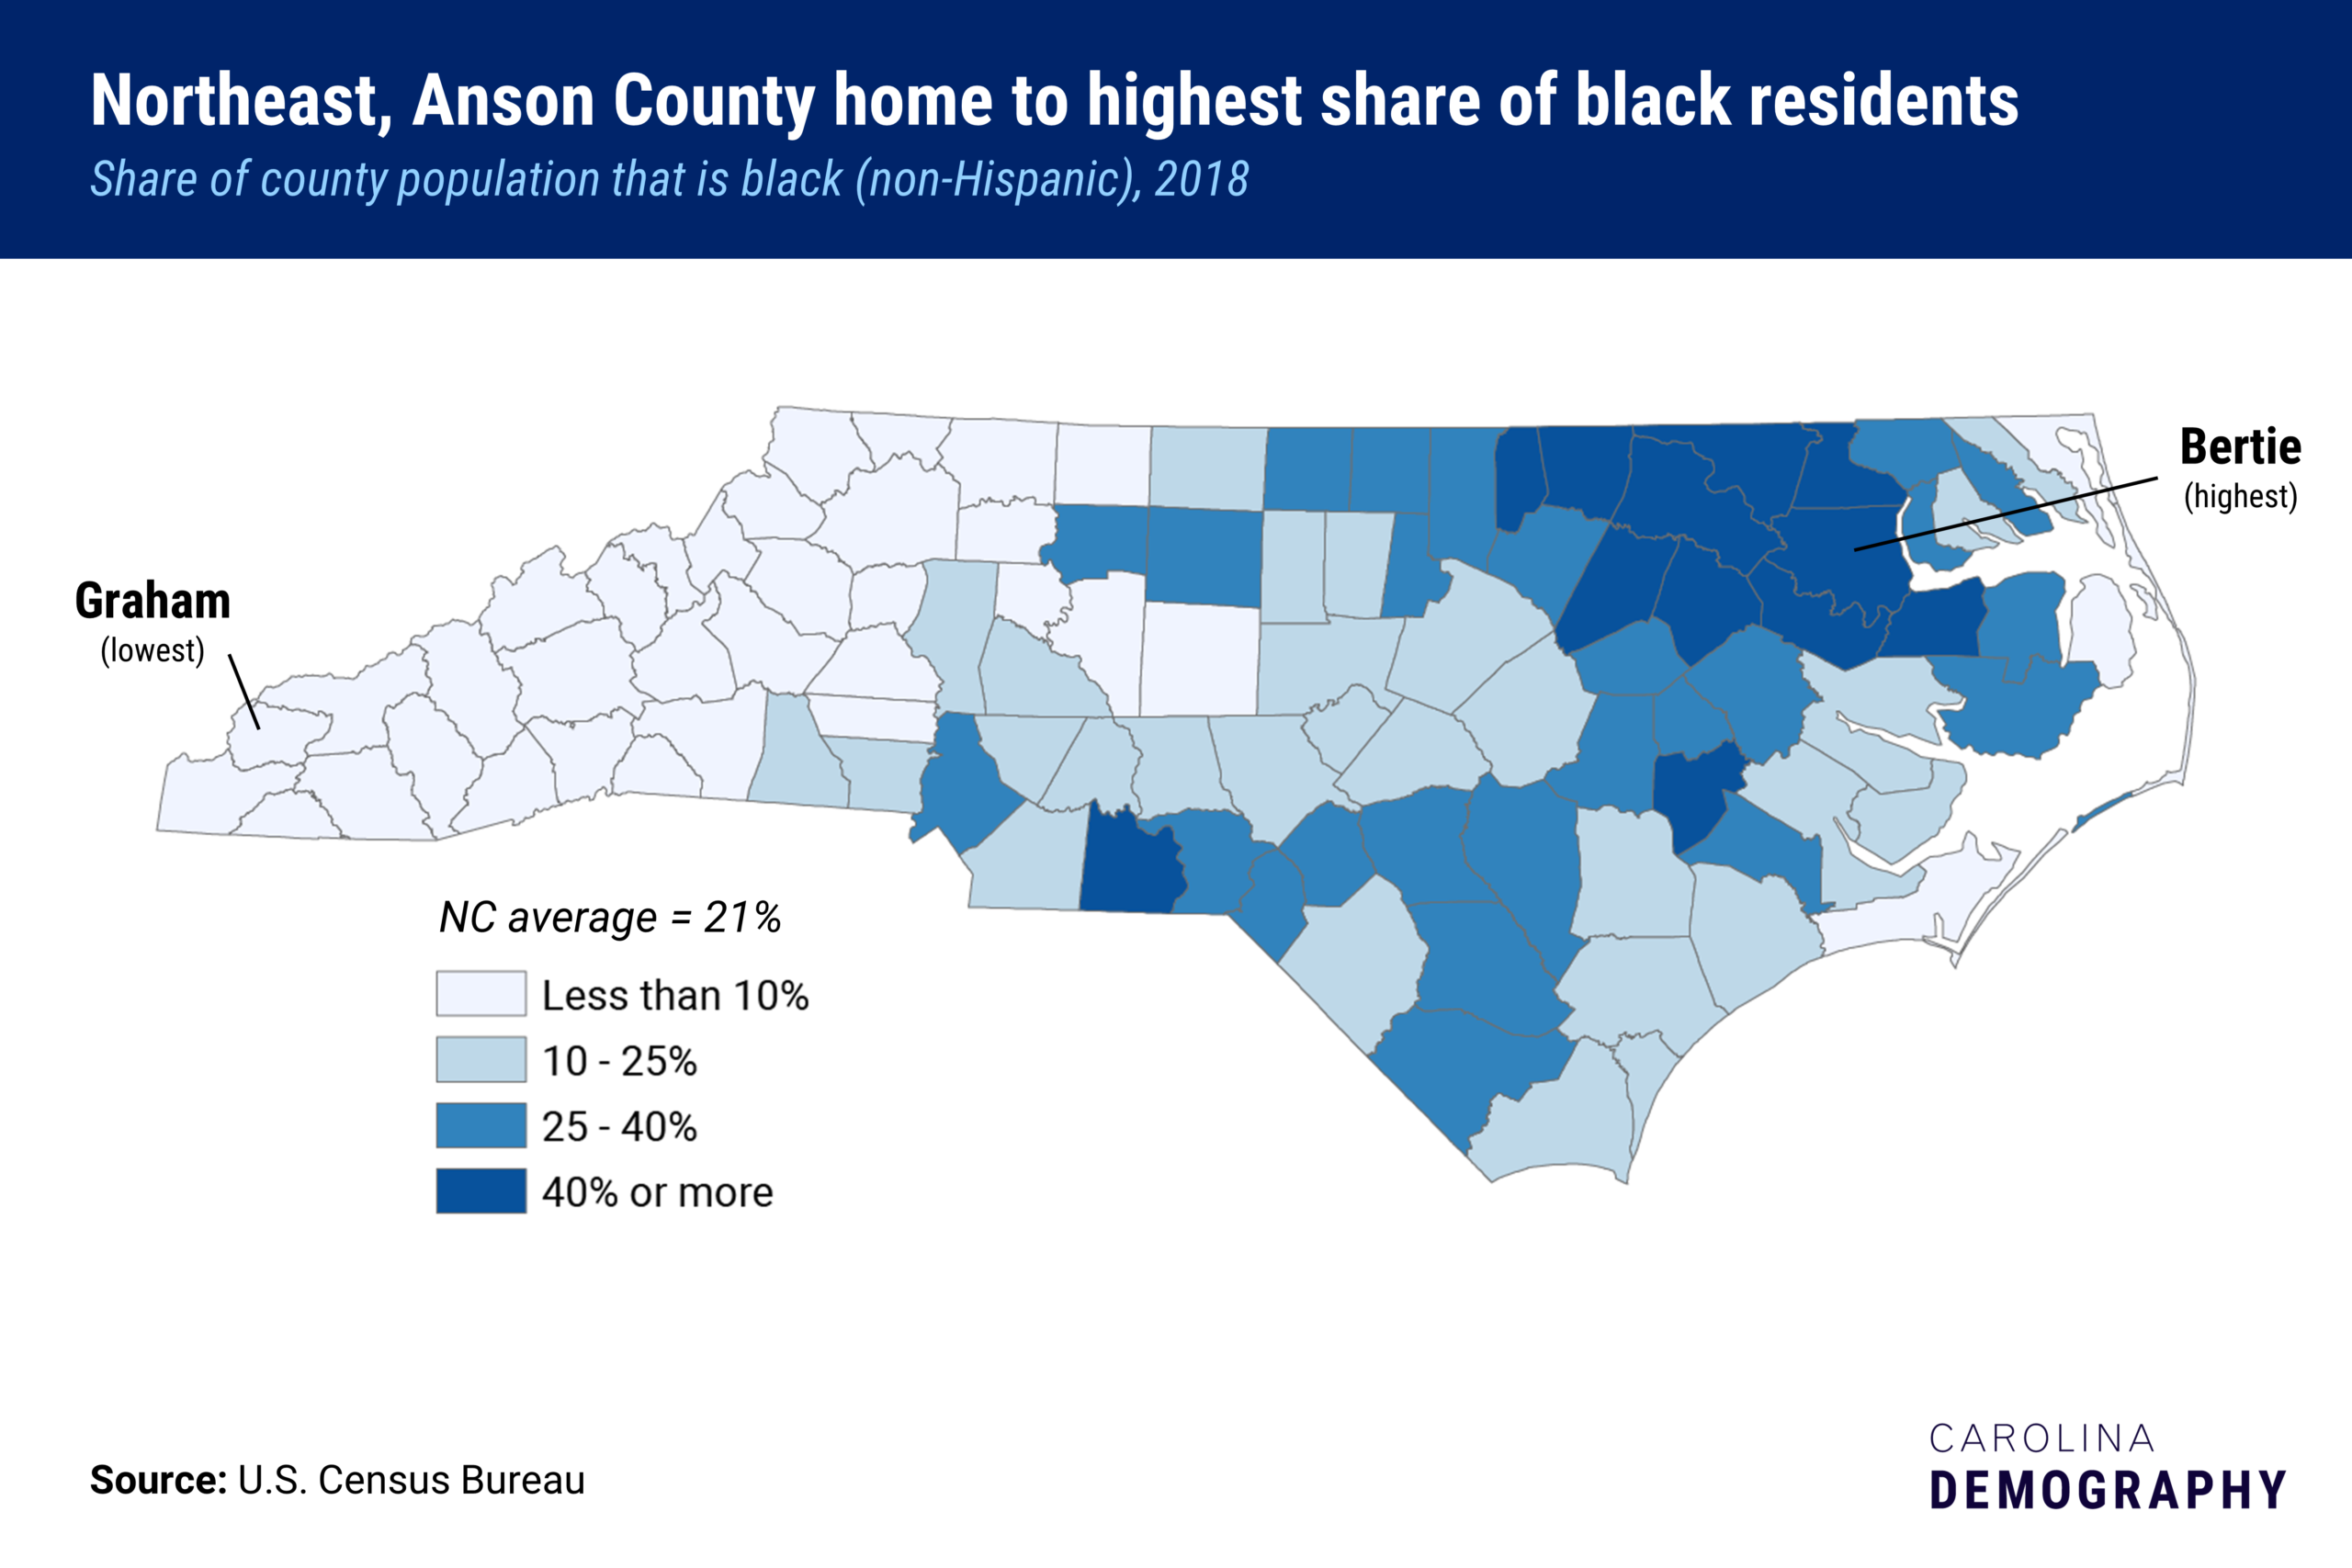 A county map of North Carolina showing the share of county population that is Black. Bertie county has the highest share, where Graham county has the lowest. The state average is 21 percent.